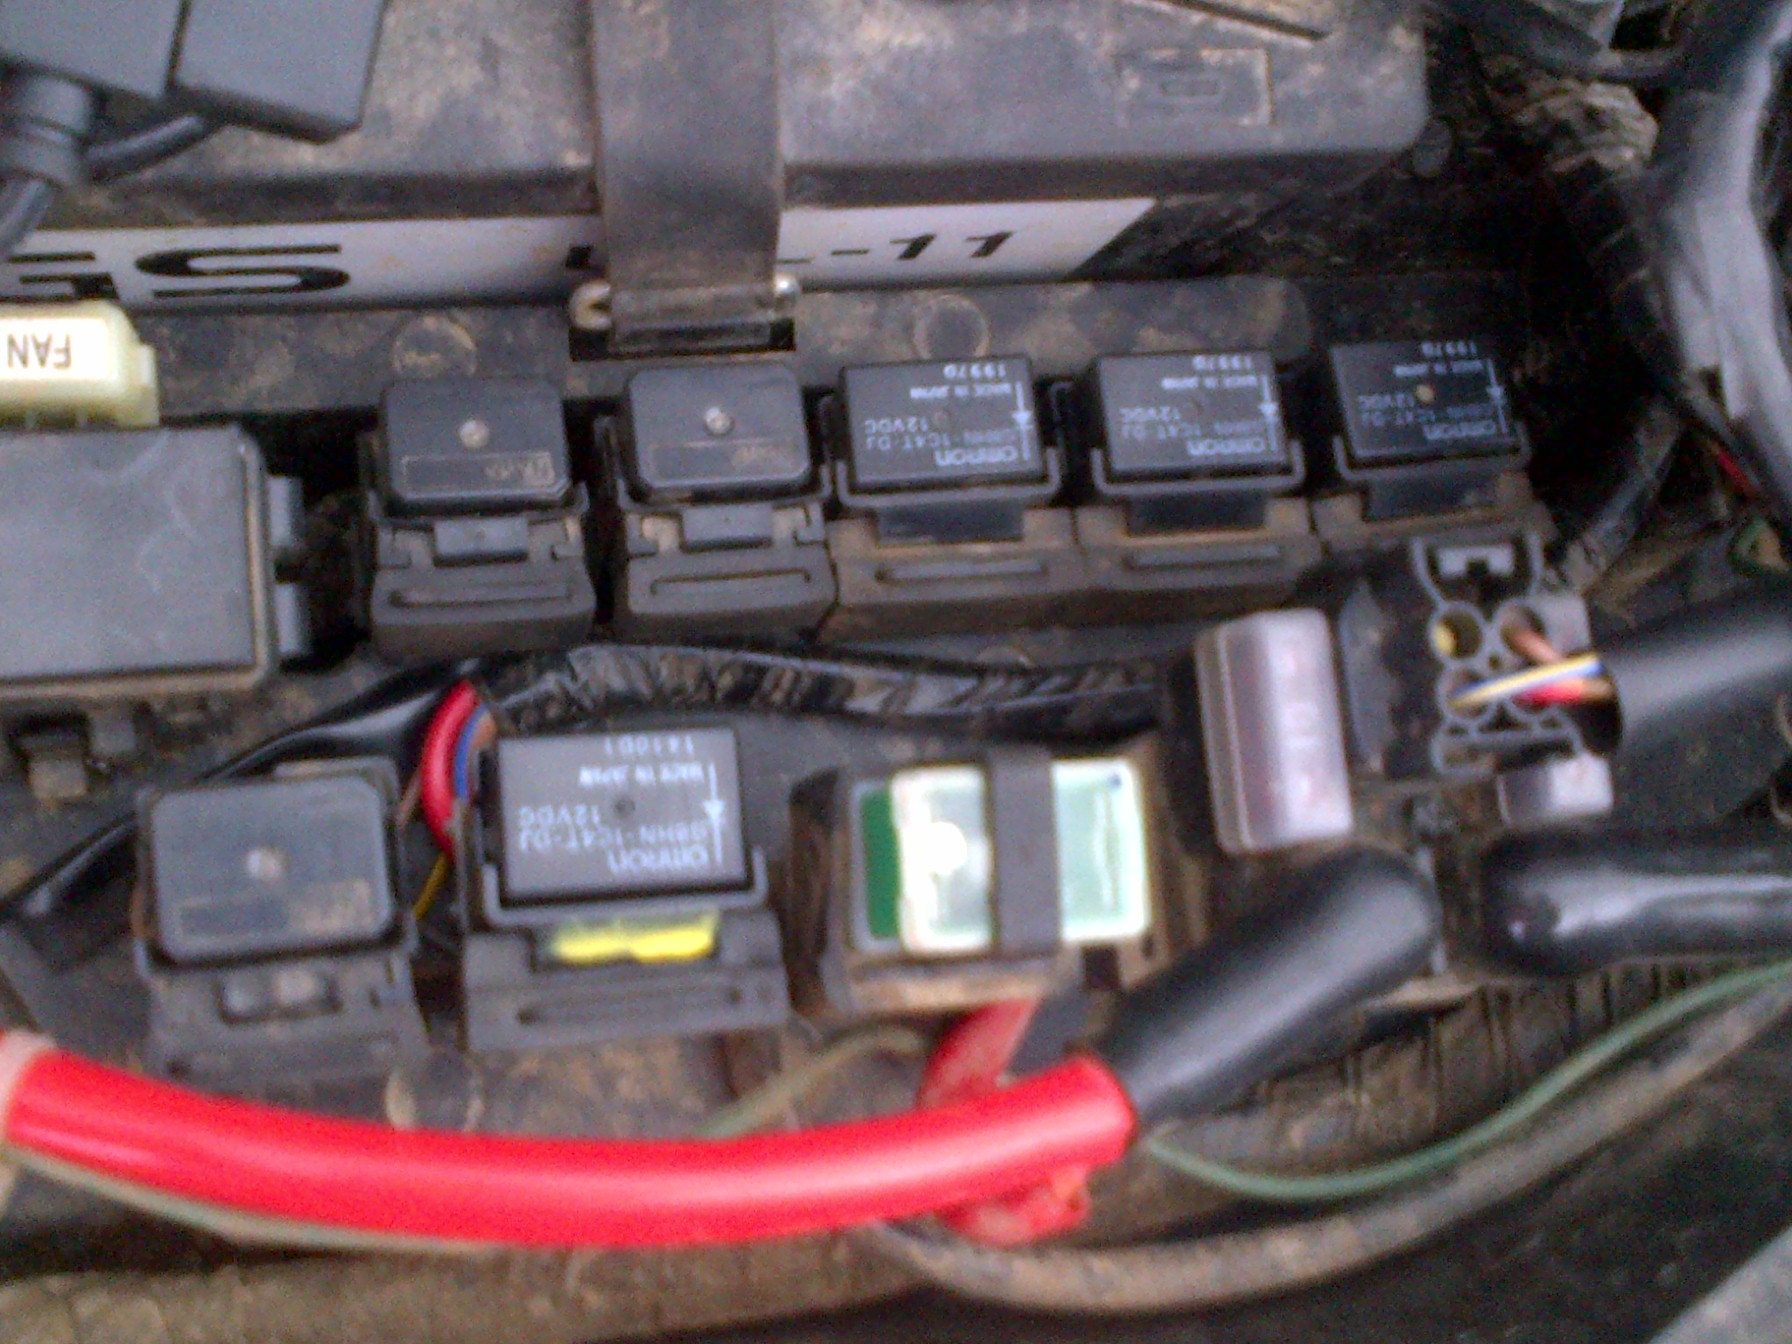 Fuse Box On Yamaha Rhino Not Lossing Wiring Diagram 450 I Have A 2008 700 Fi Experienced Lot Of Problem Rh Justanswer